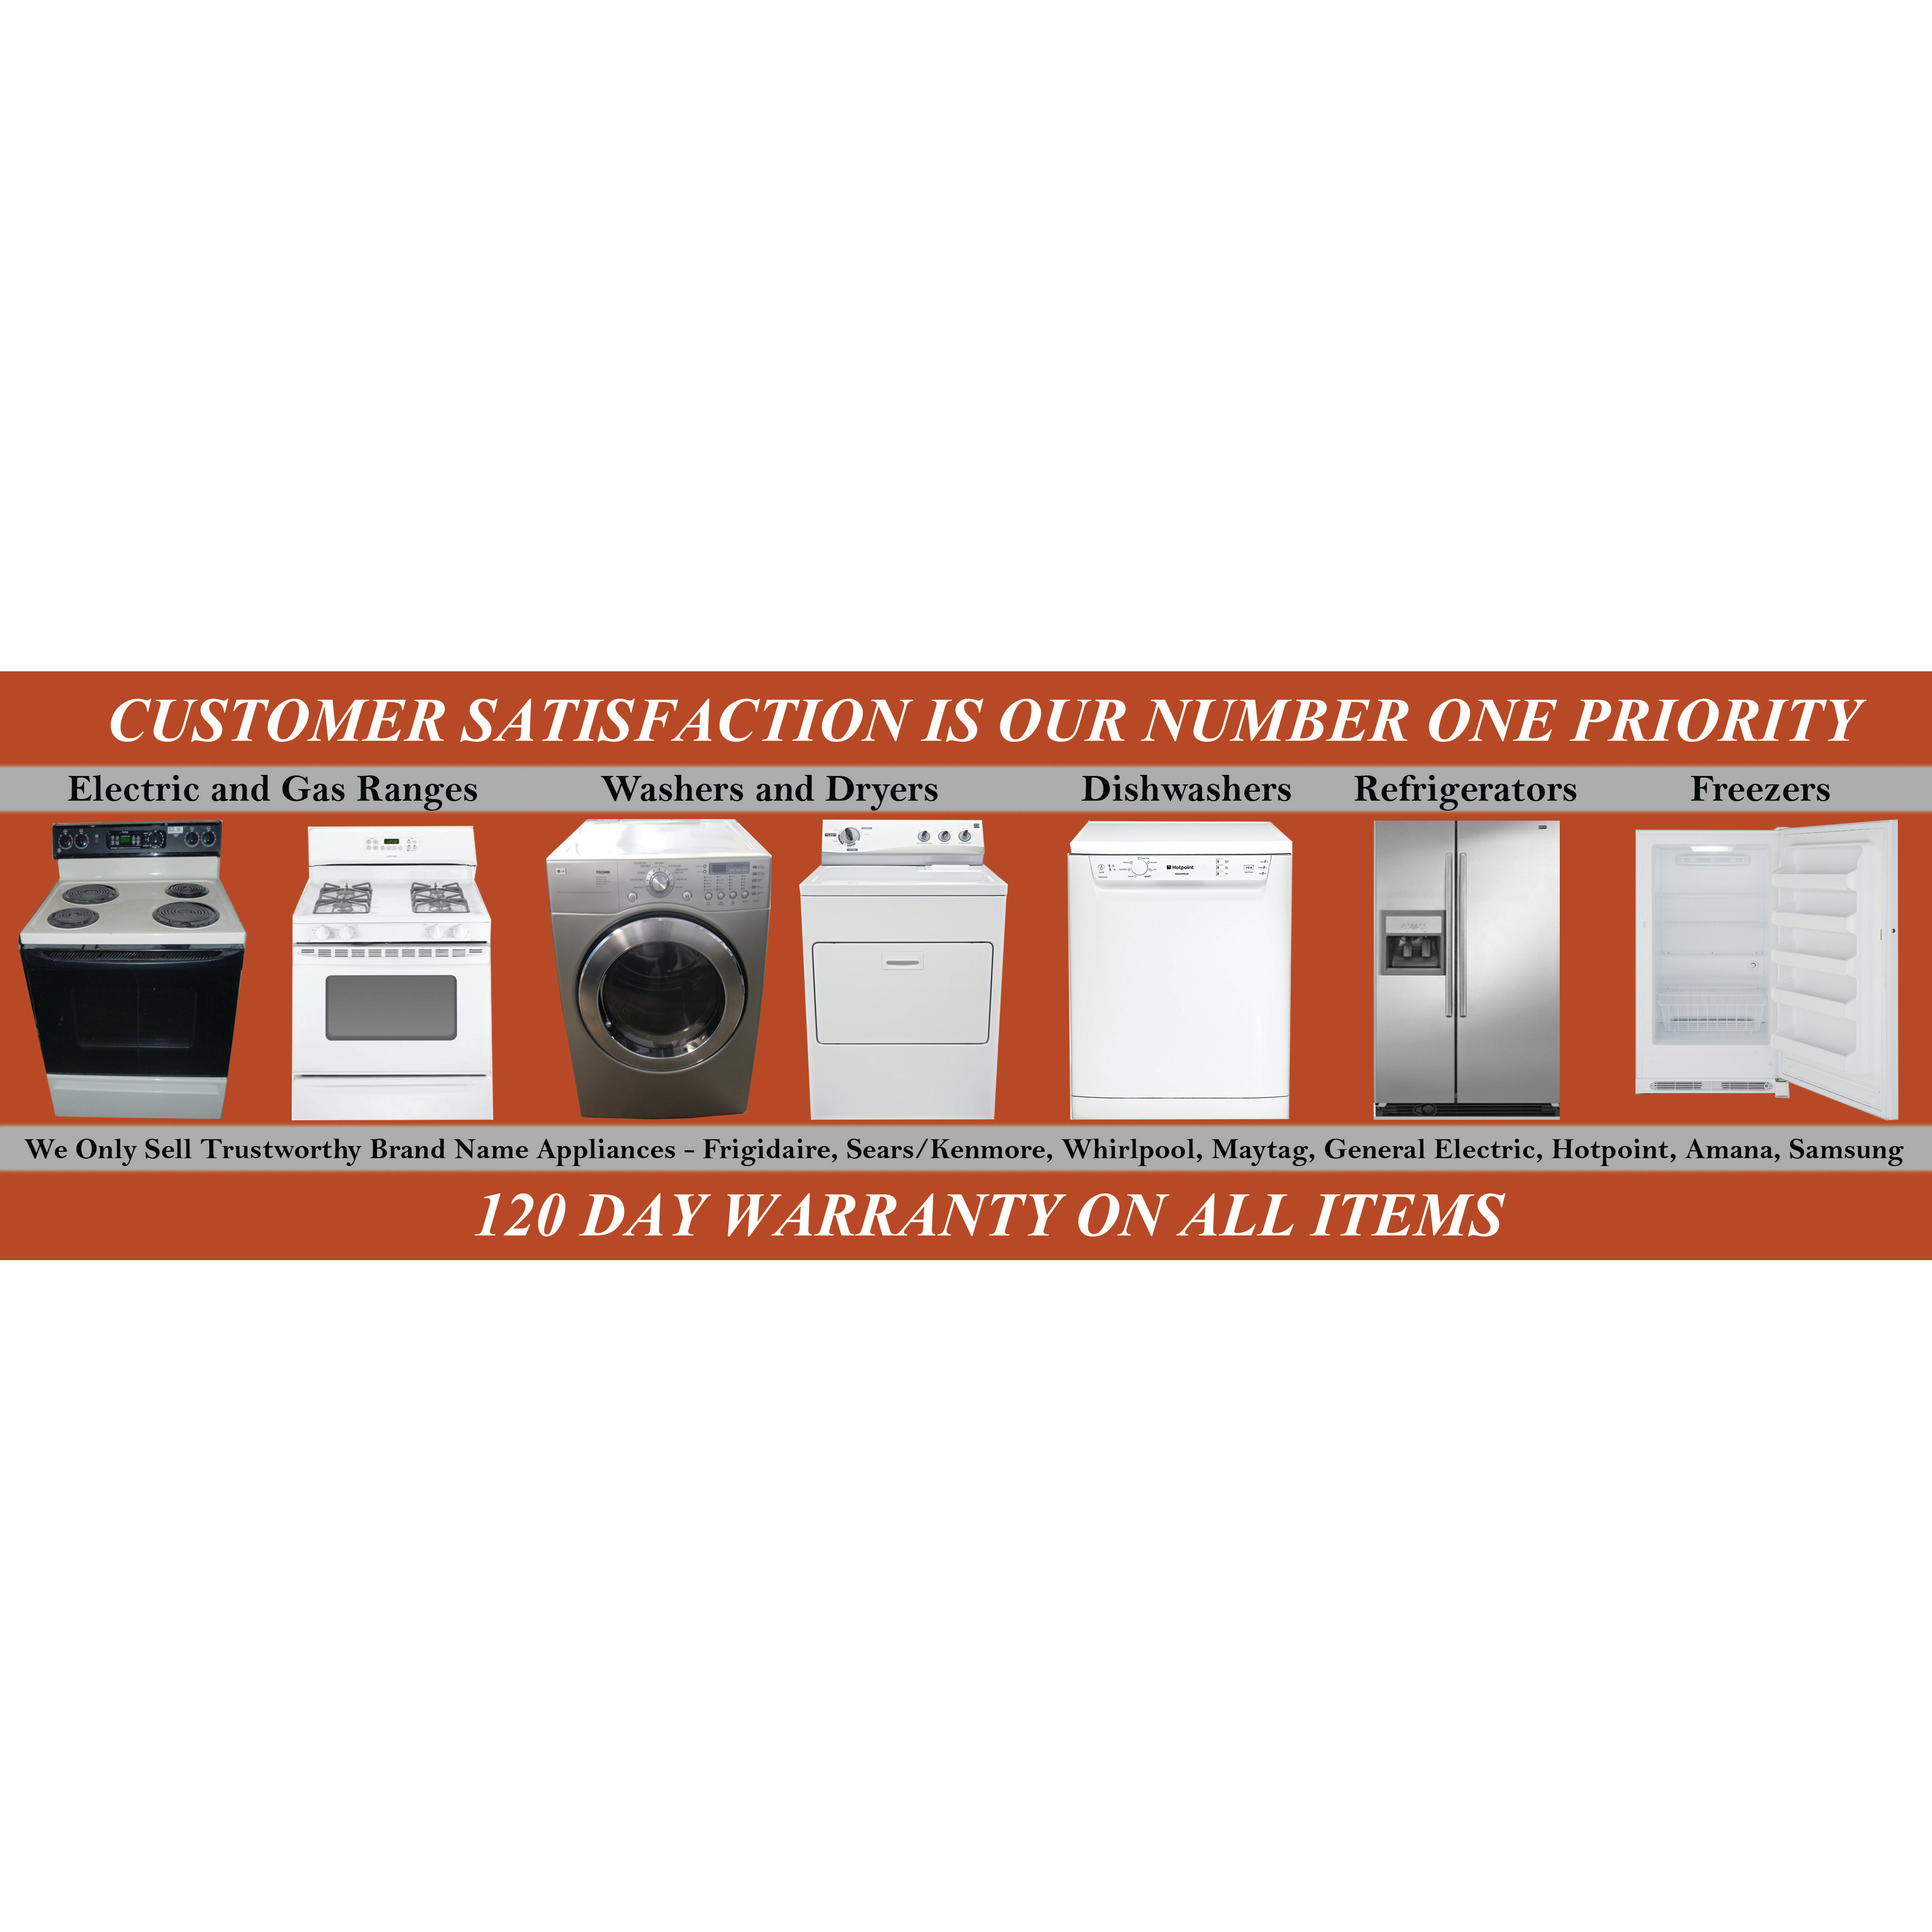 Mitchell's Appliances Sales and Service - Jonesboro, GA - Appliance Rental & Repair Services